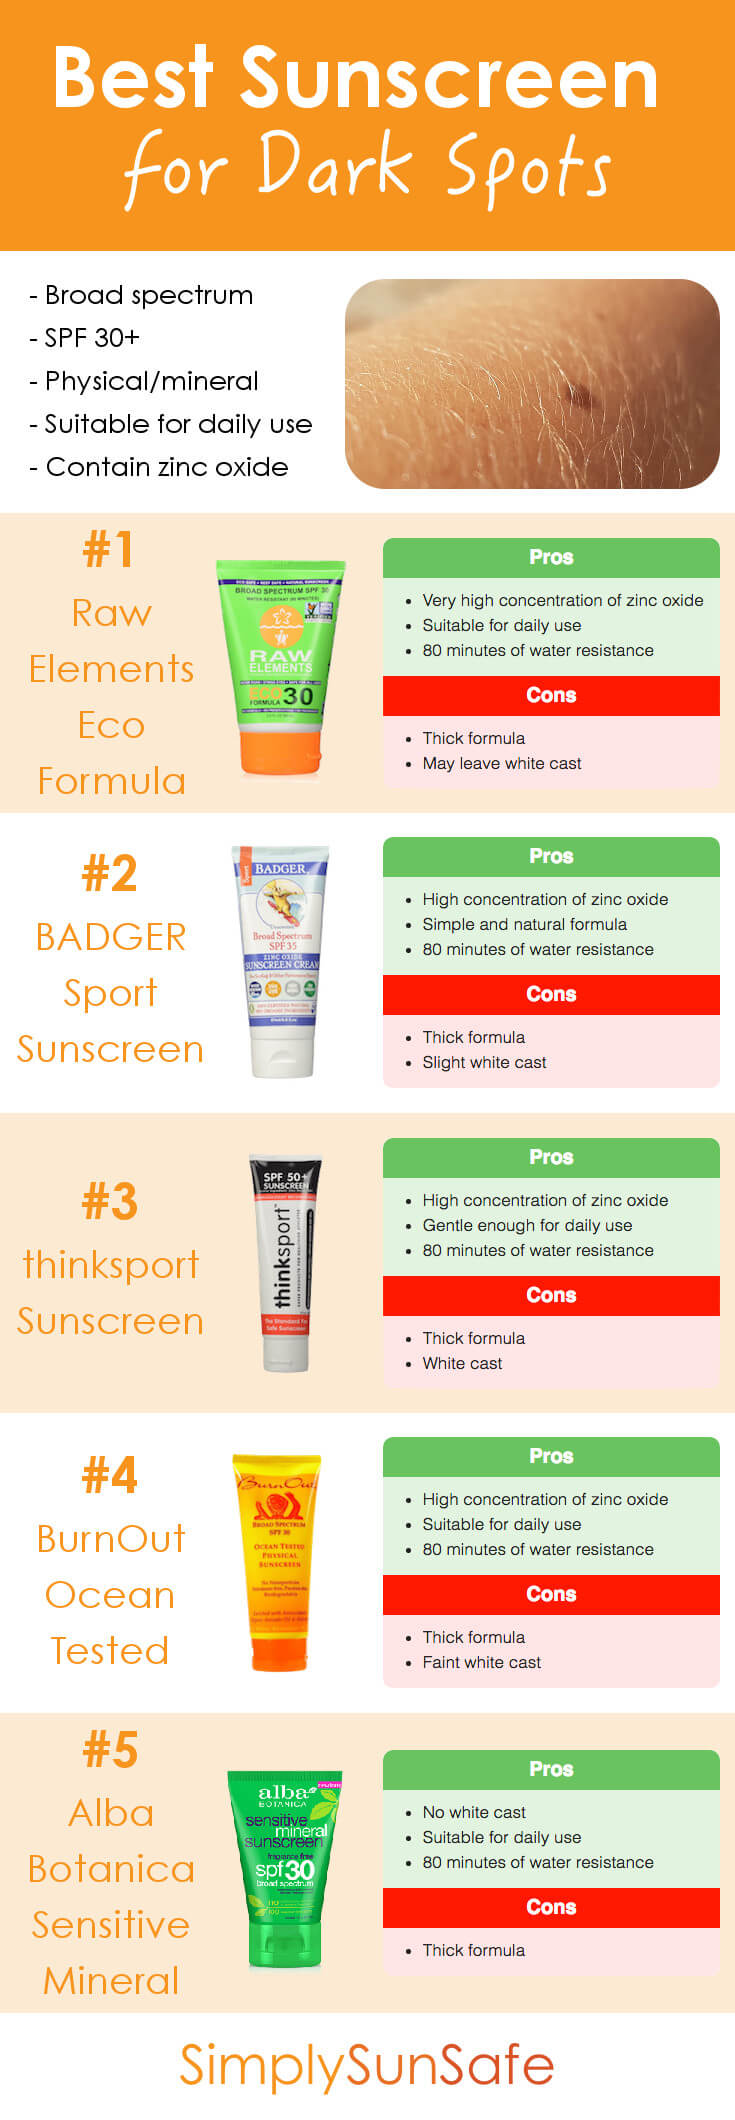 Best Sunscreen for Dark Spots Pinterest